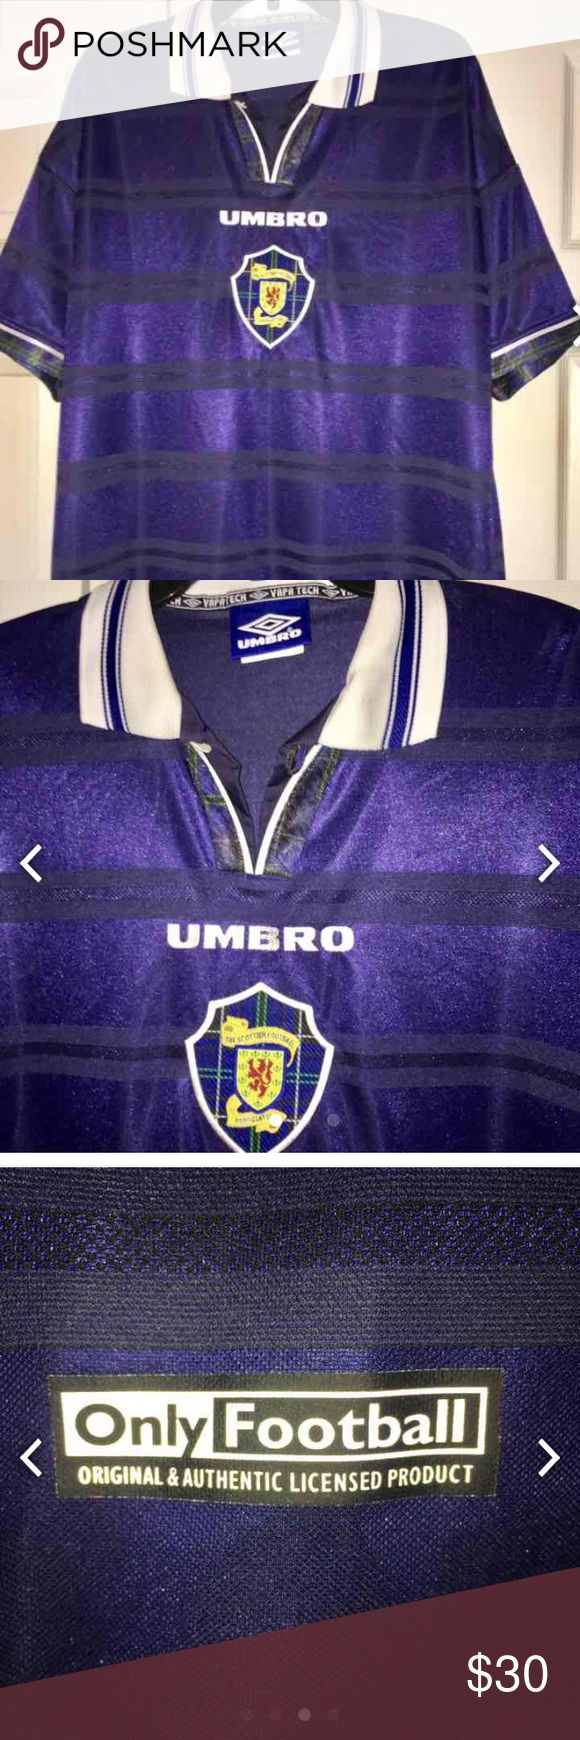 PRICE DROP $24 UMBRO SCOTTISH FOOTBALL JERSEY UMBRO SCOTTISH NAVY ONLY FOOTBALL JERSEY ORIGINAL N OFFICIAL AUTHENTIC INLY FOOTBALL JERSEY NEW NEVER WORN SIZE XL Umbro Shirts